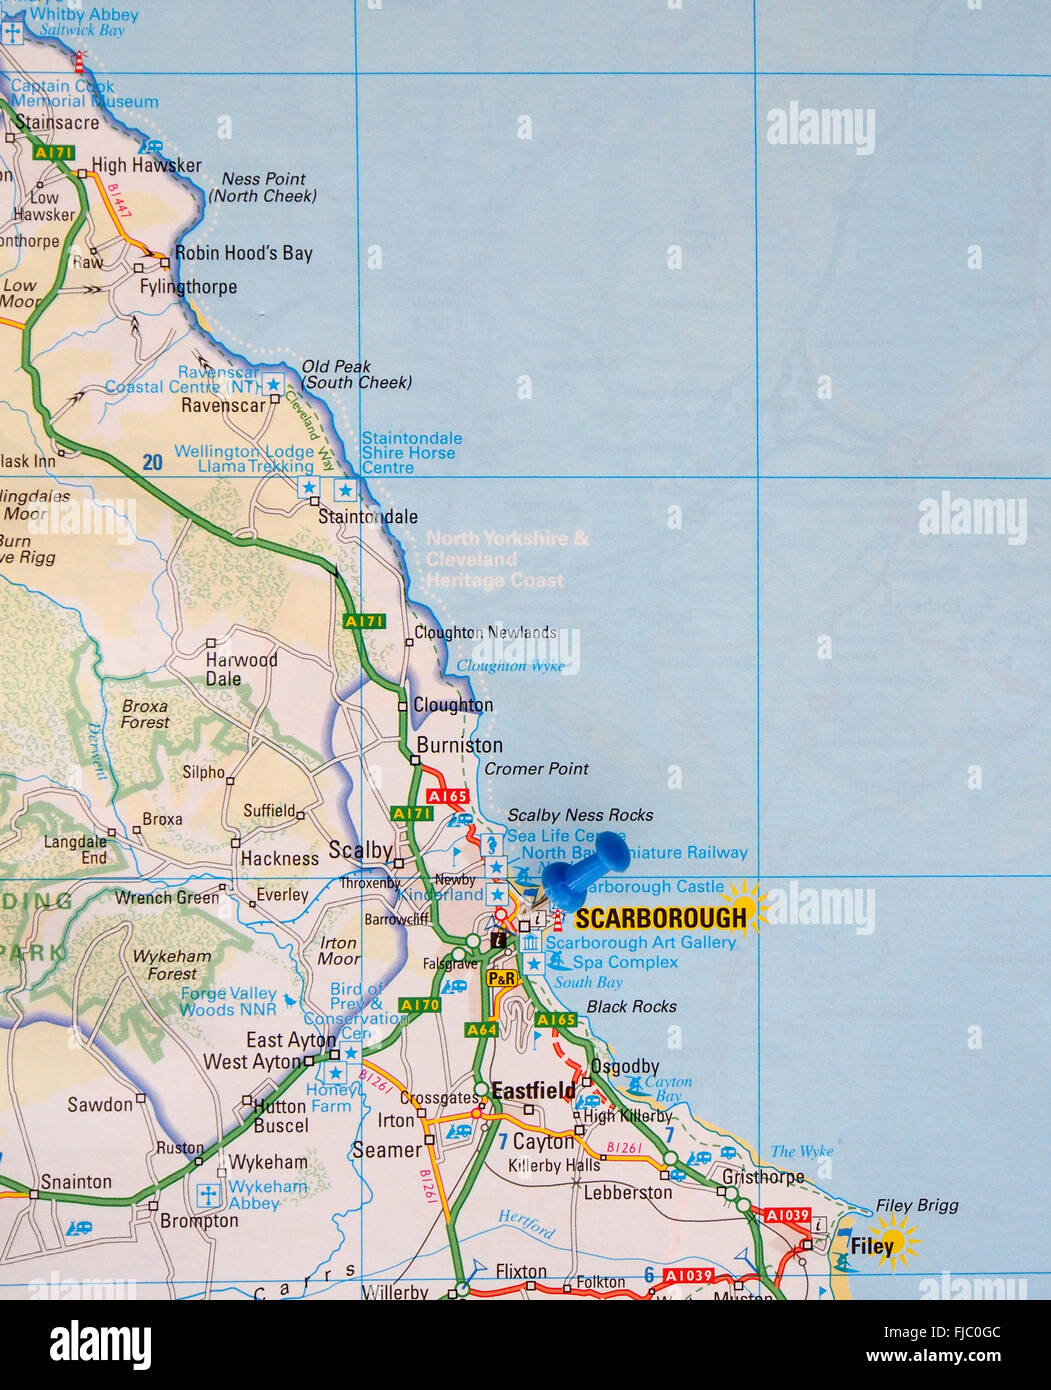 Road Map Of The East Coast Of England Showing Robin Hoods